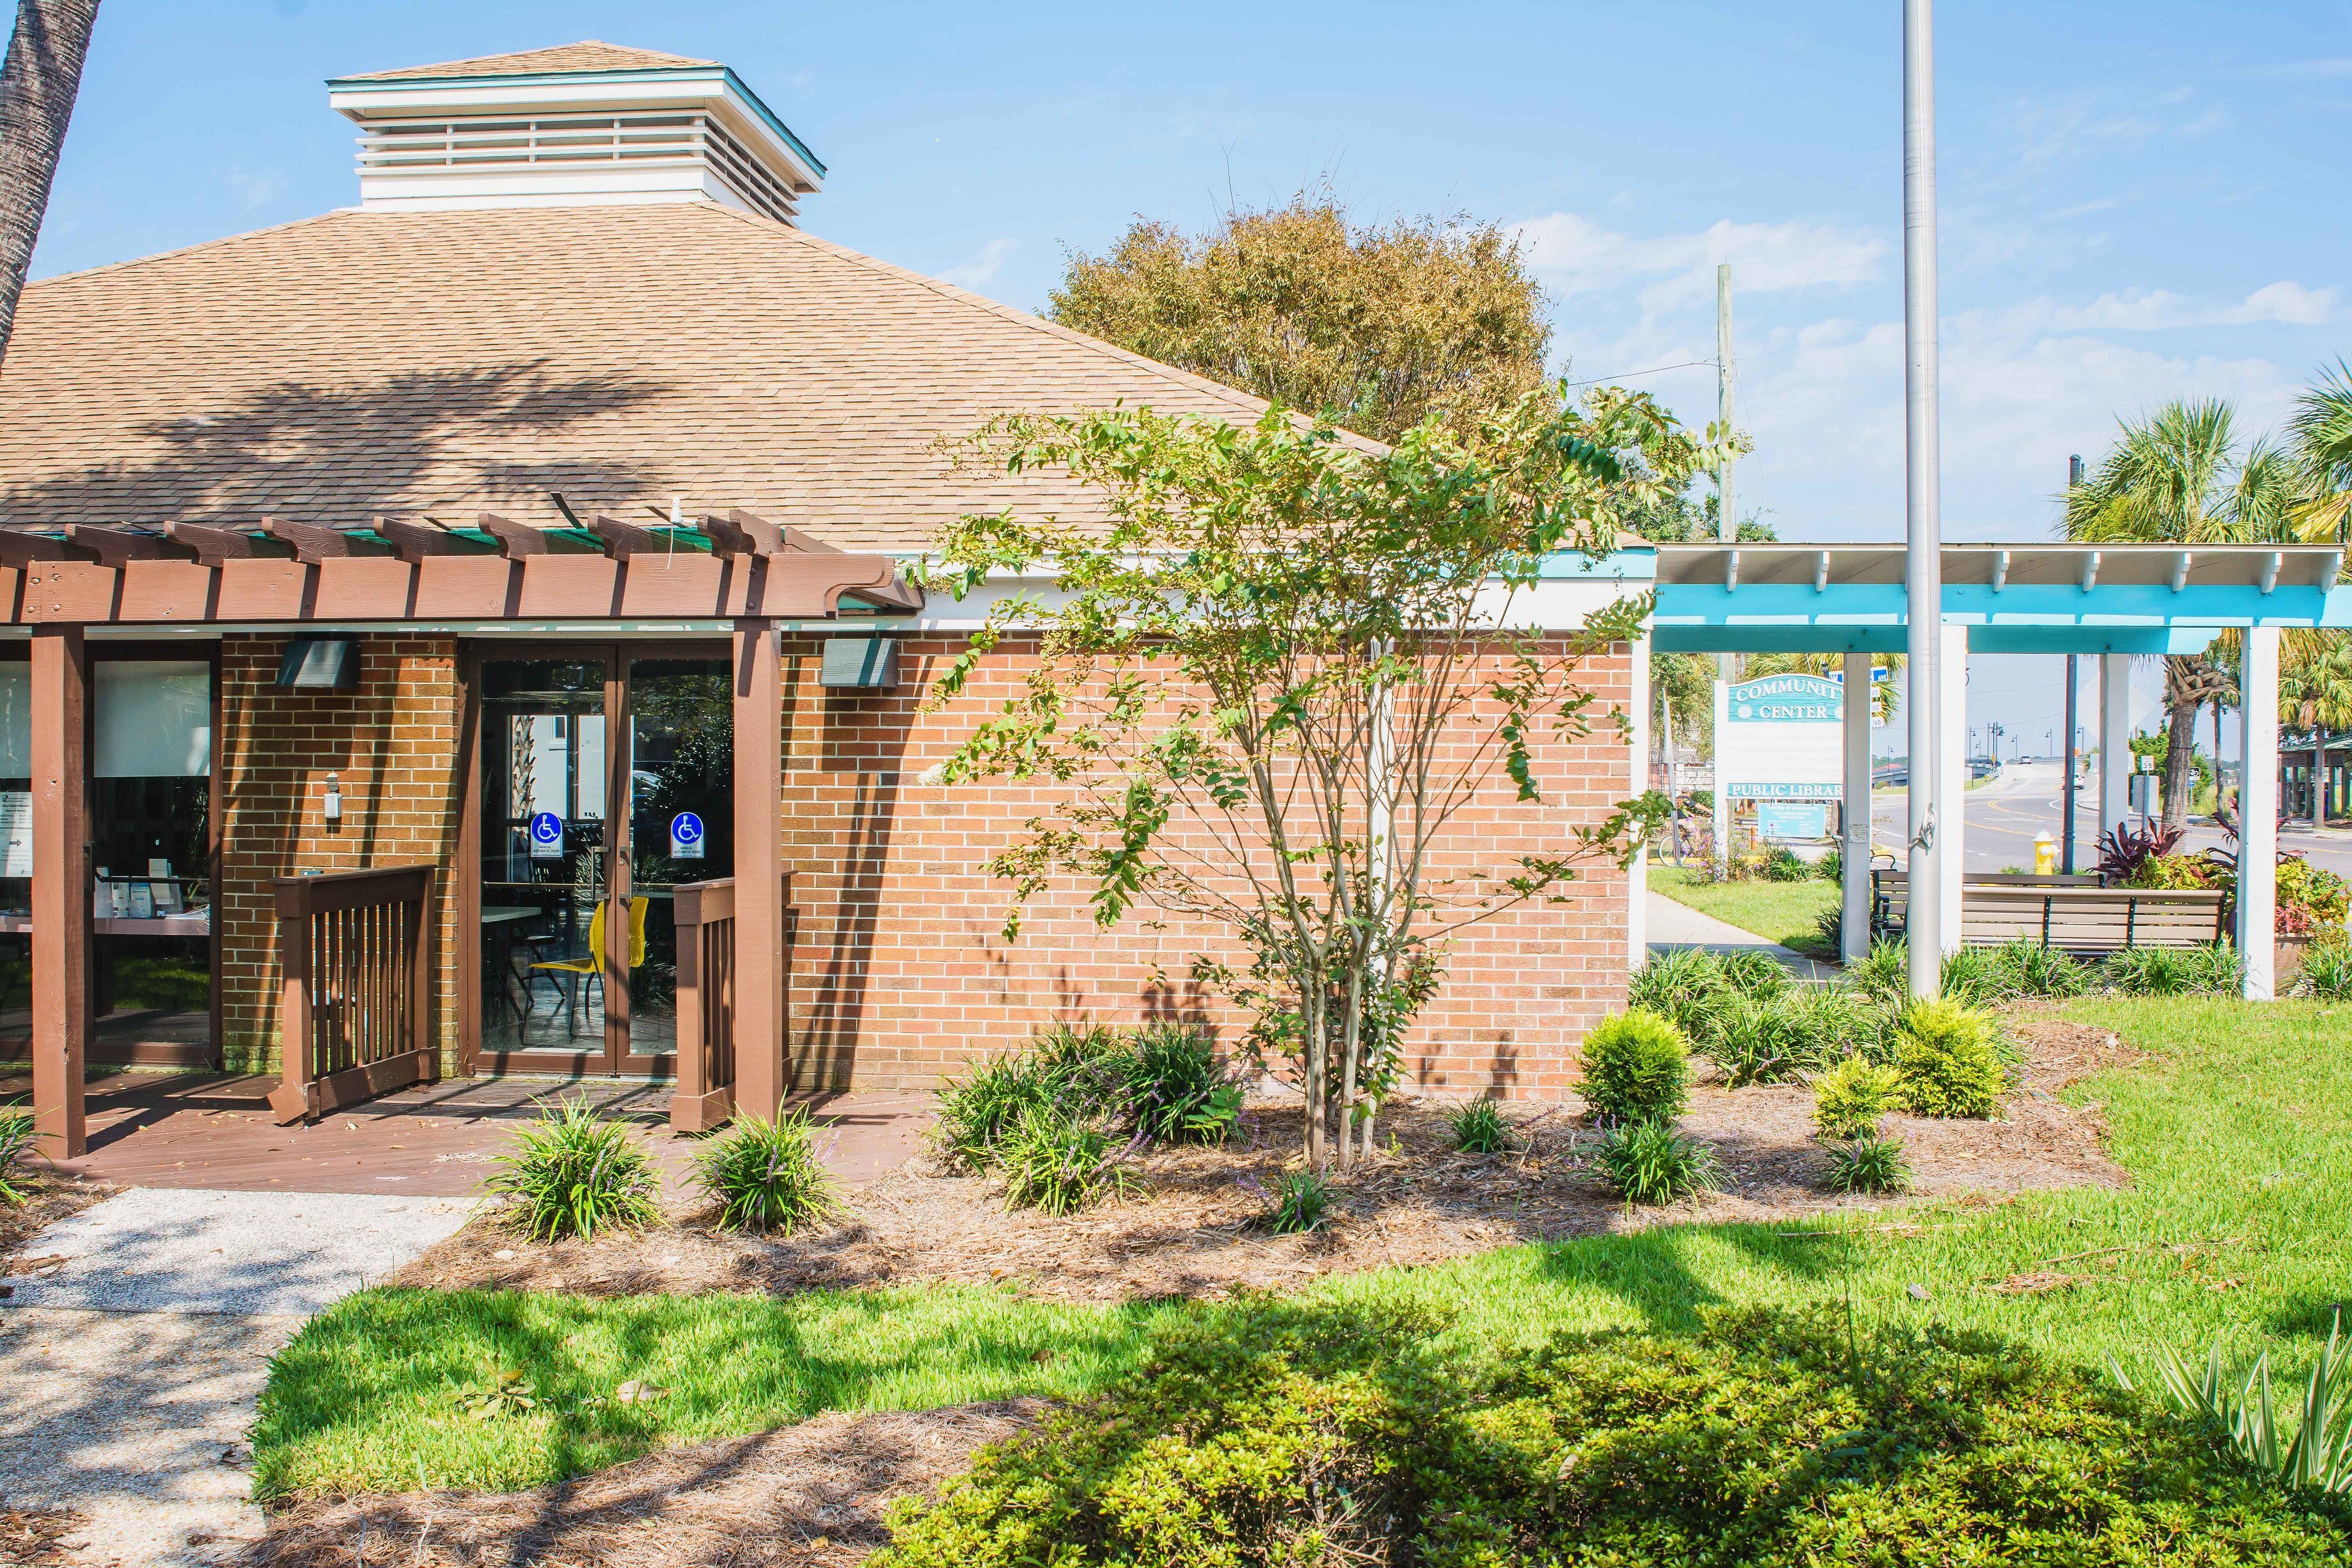 Reopening dates set for Folly Beach, West Ashley library branches